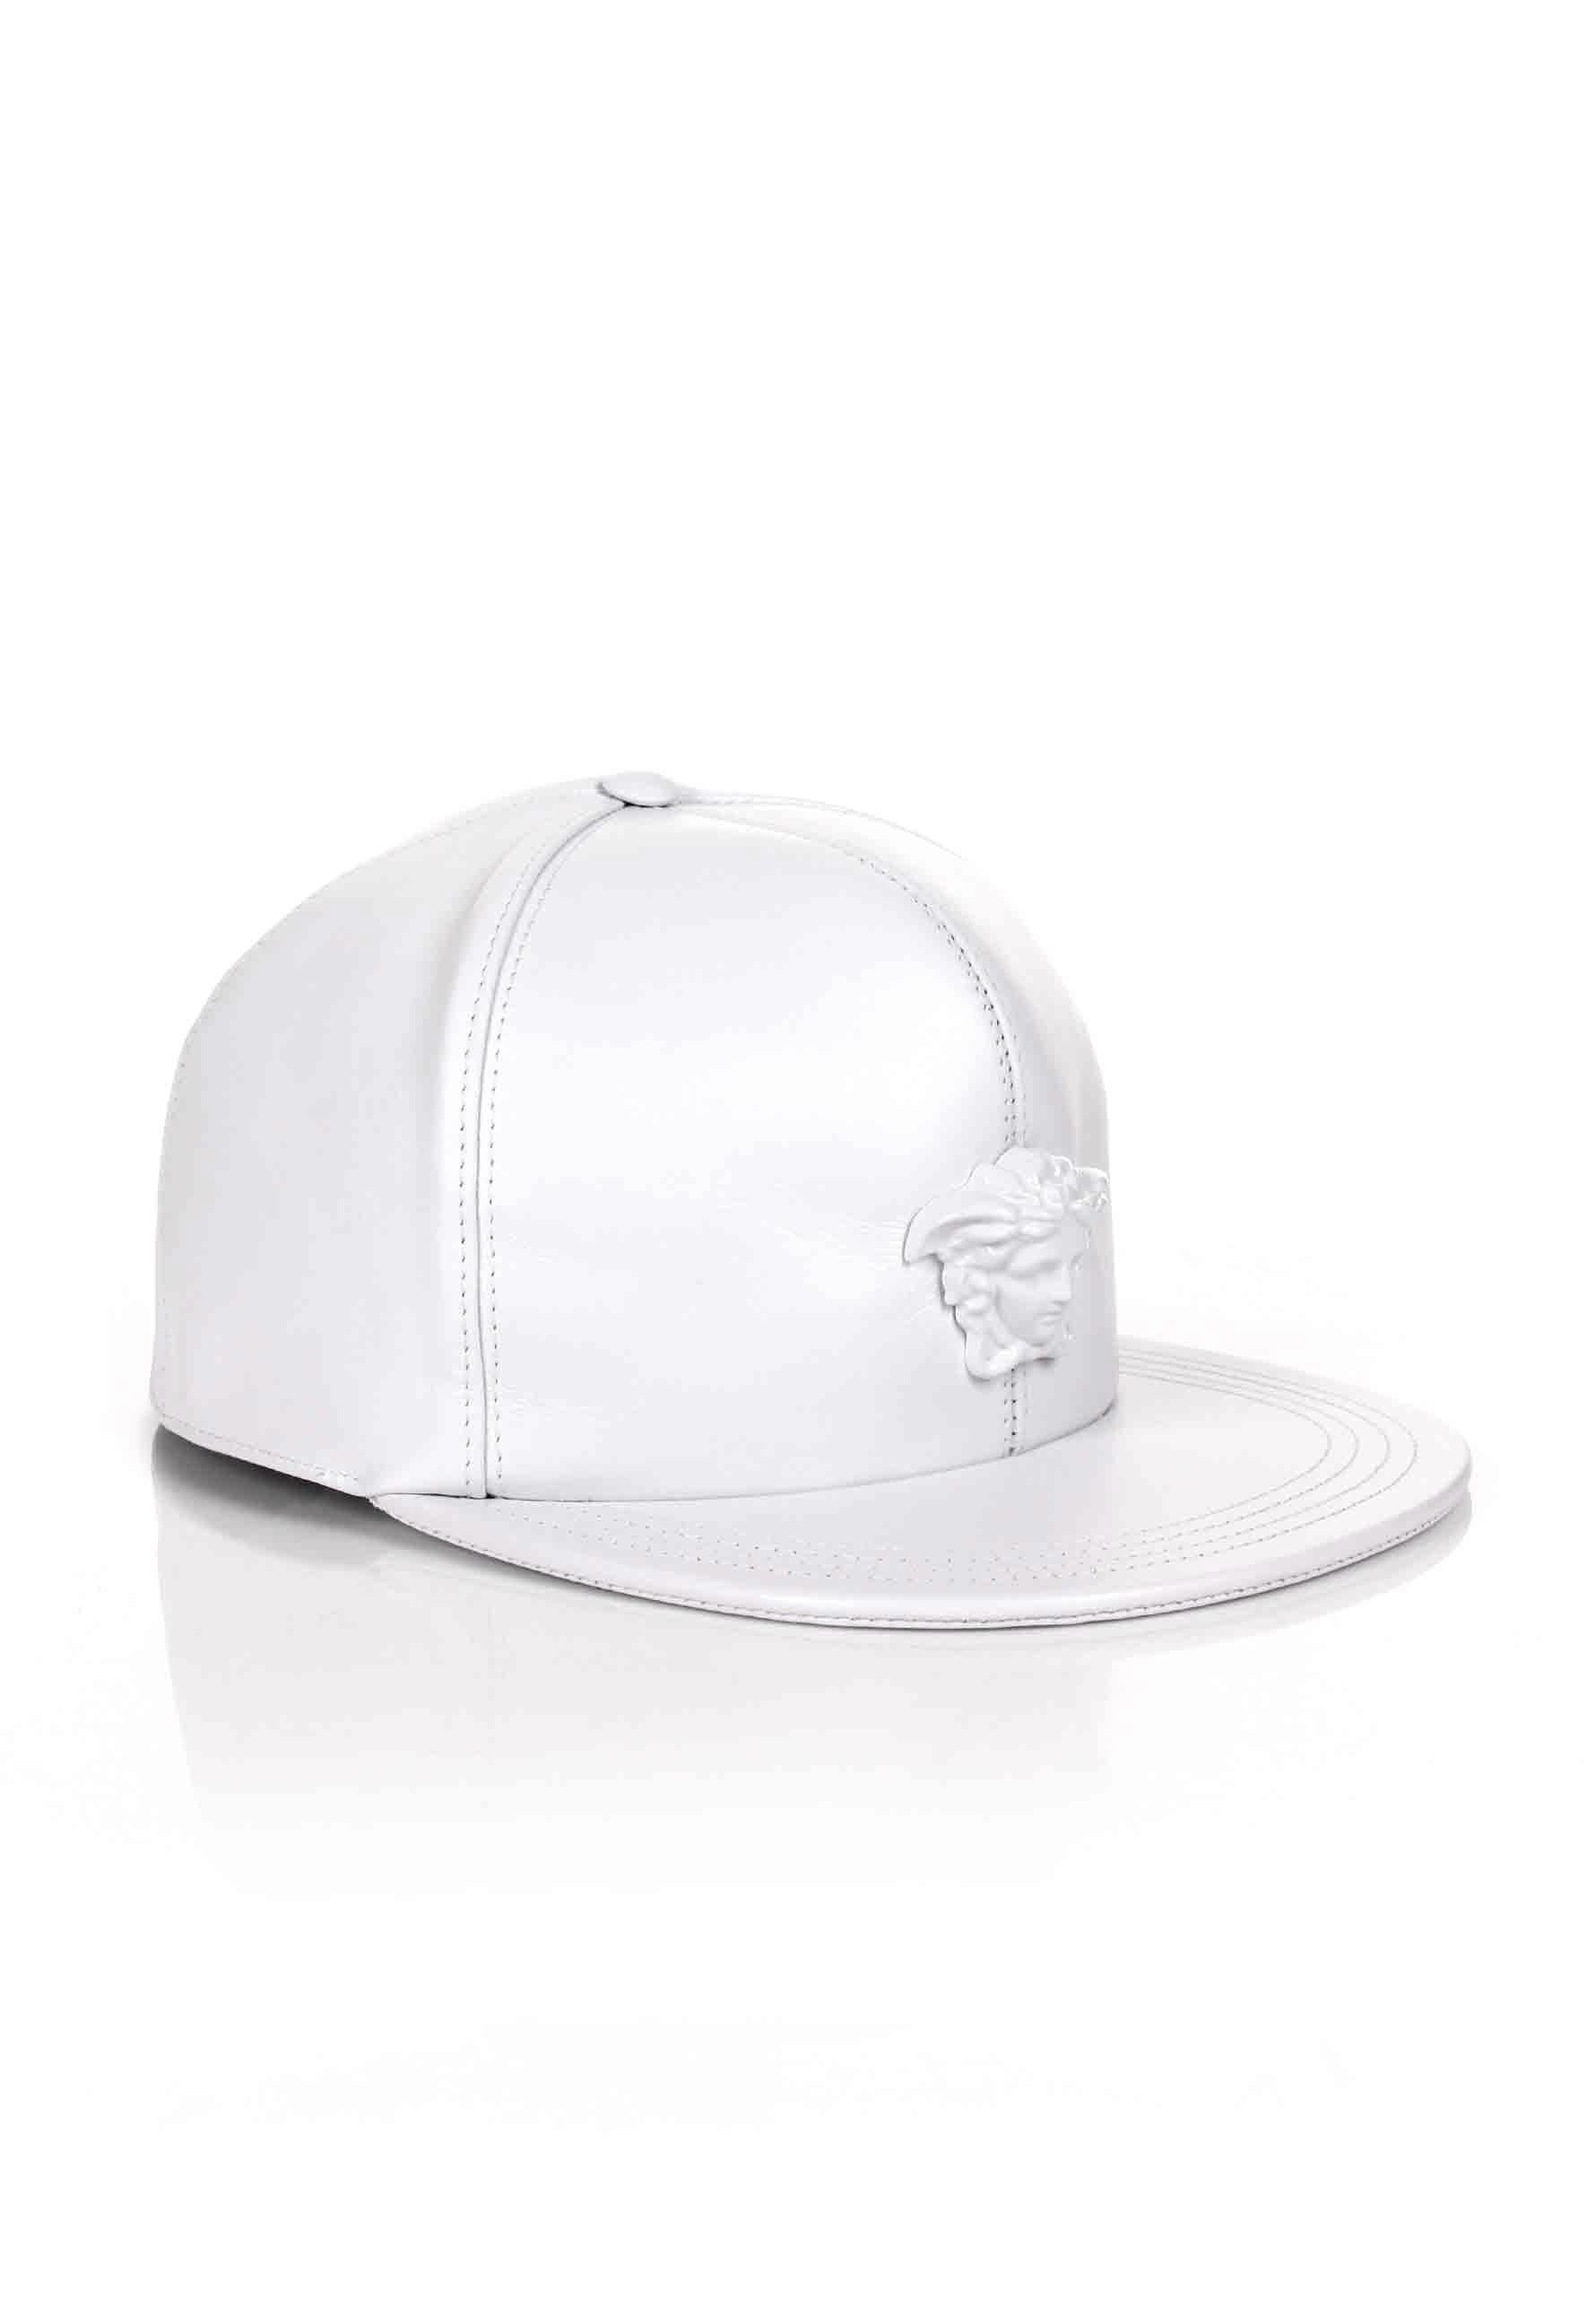 c2a2882c4ec ... black one size 0ccc4 af5ac  low price lyst versace medusa logo leather  show cap white white in white for men 29343